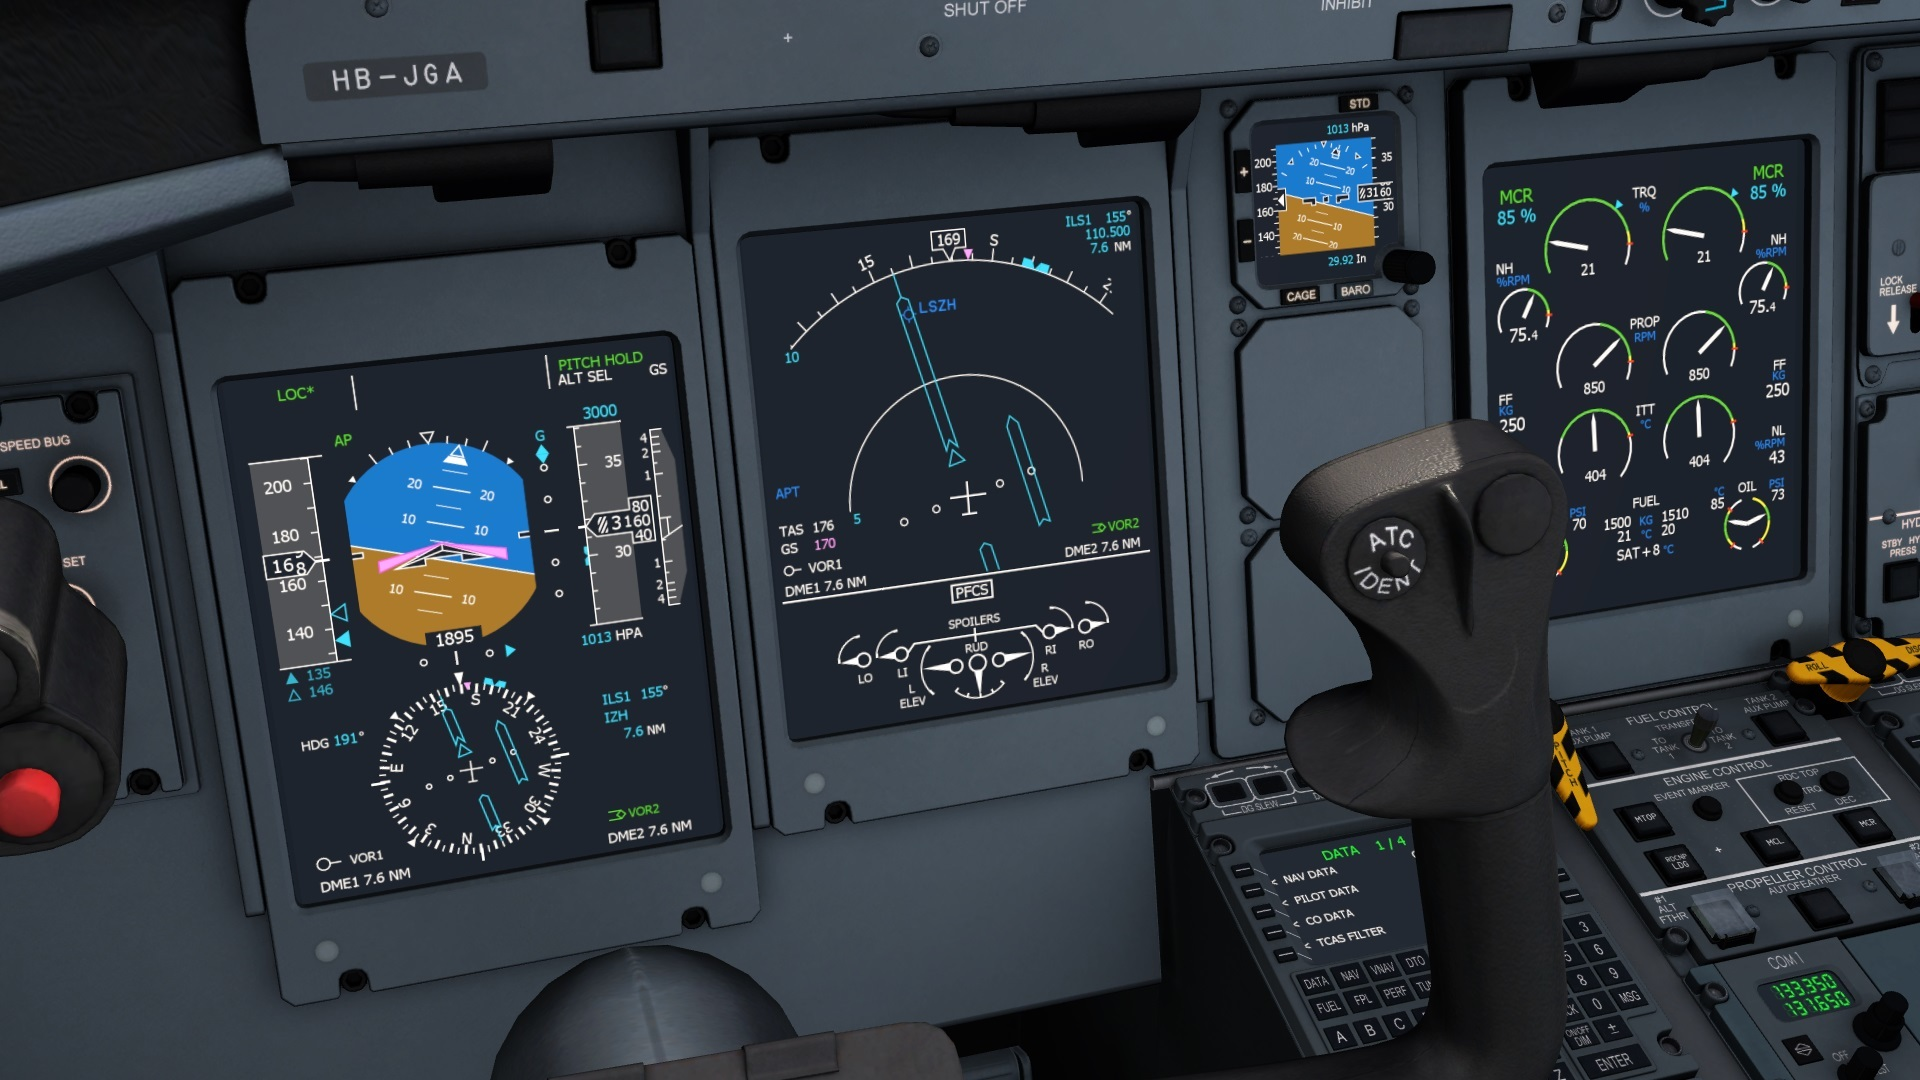 Jul 26, 2017 Q400 Aircraft and Major Update Released Today! Aerofly